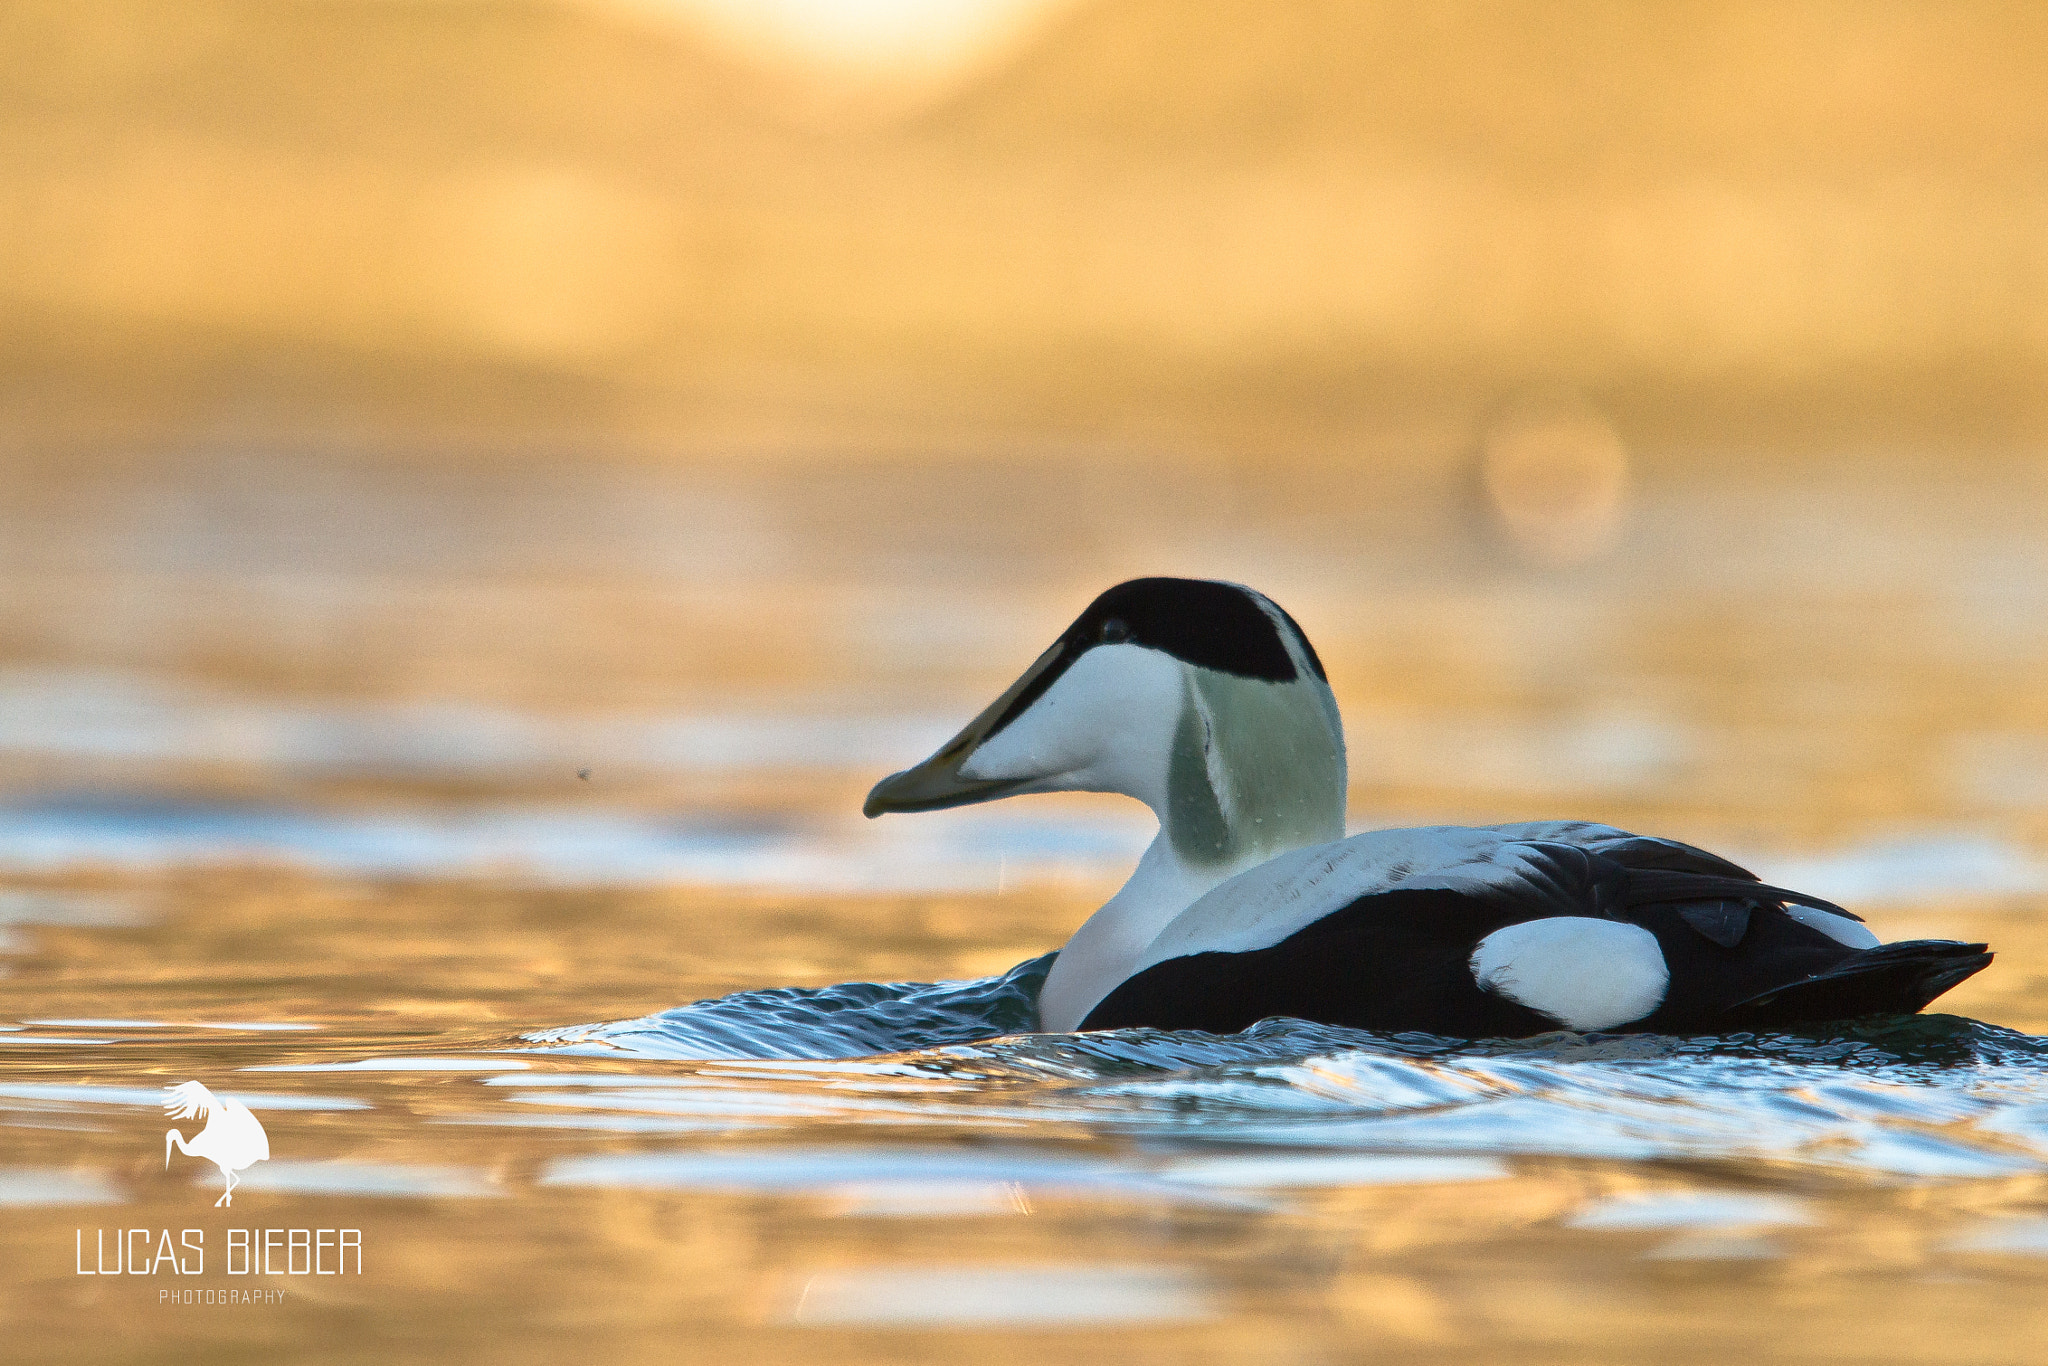 Photograph Eider à duvet by Lucas Bieber on 500px